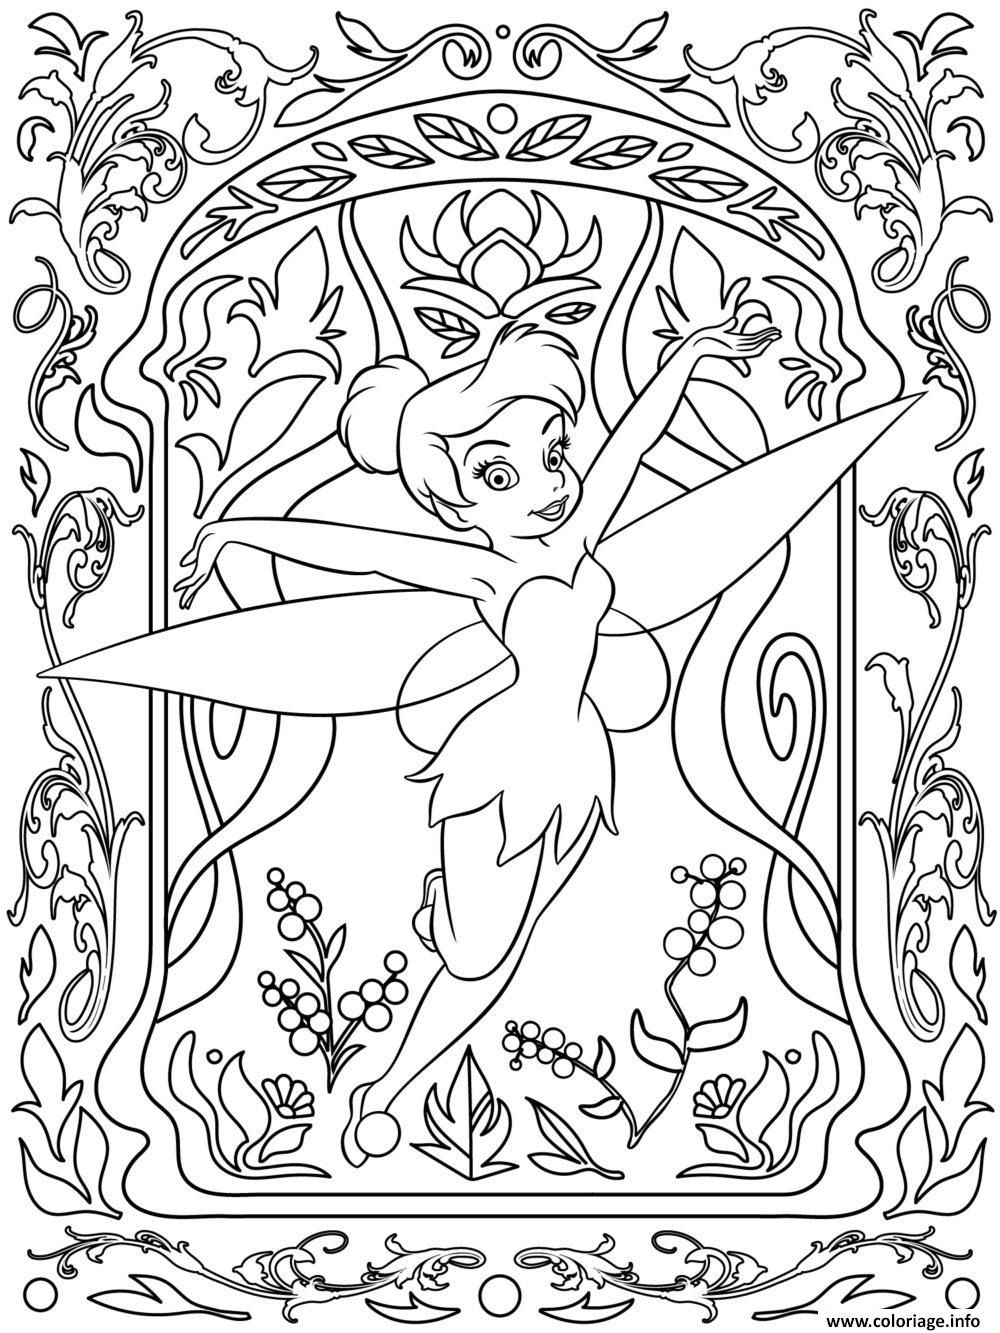 Epingle Sur Colouring Pages For Adults